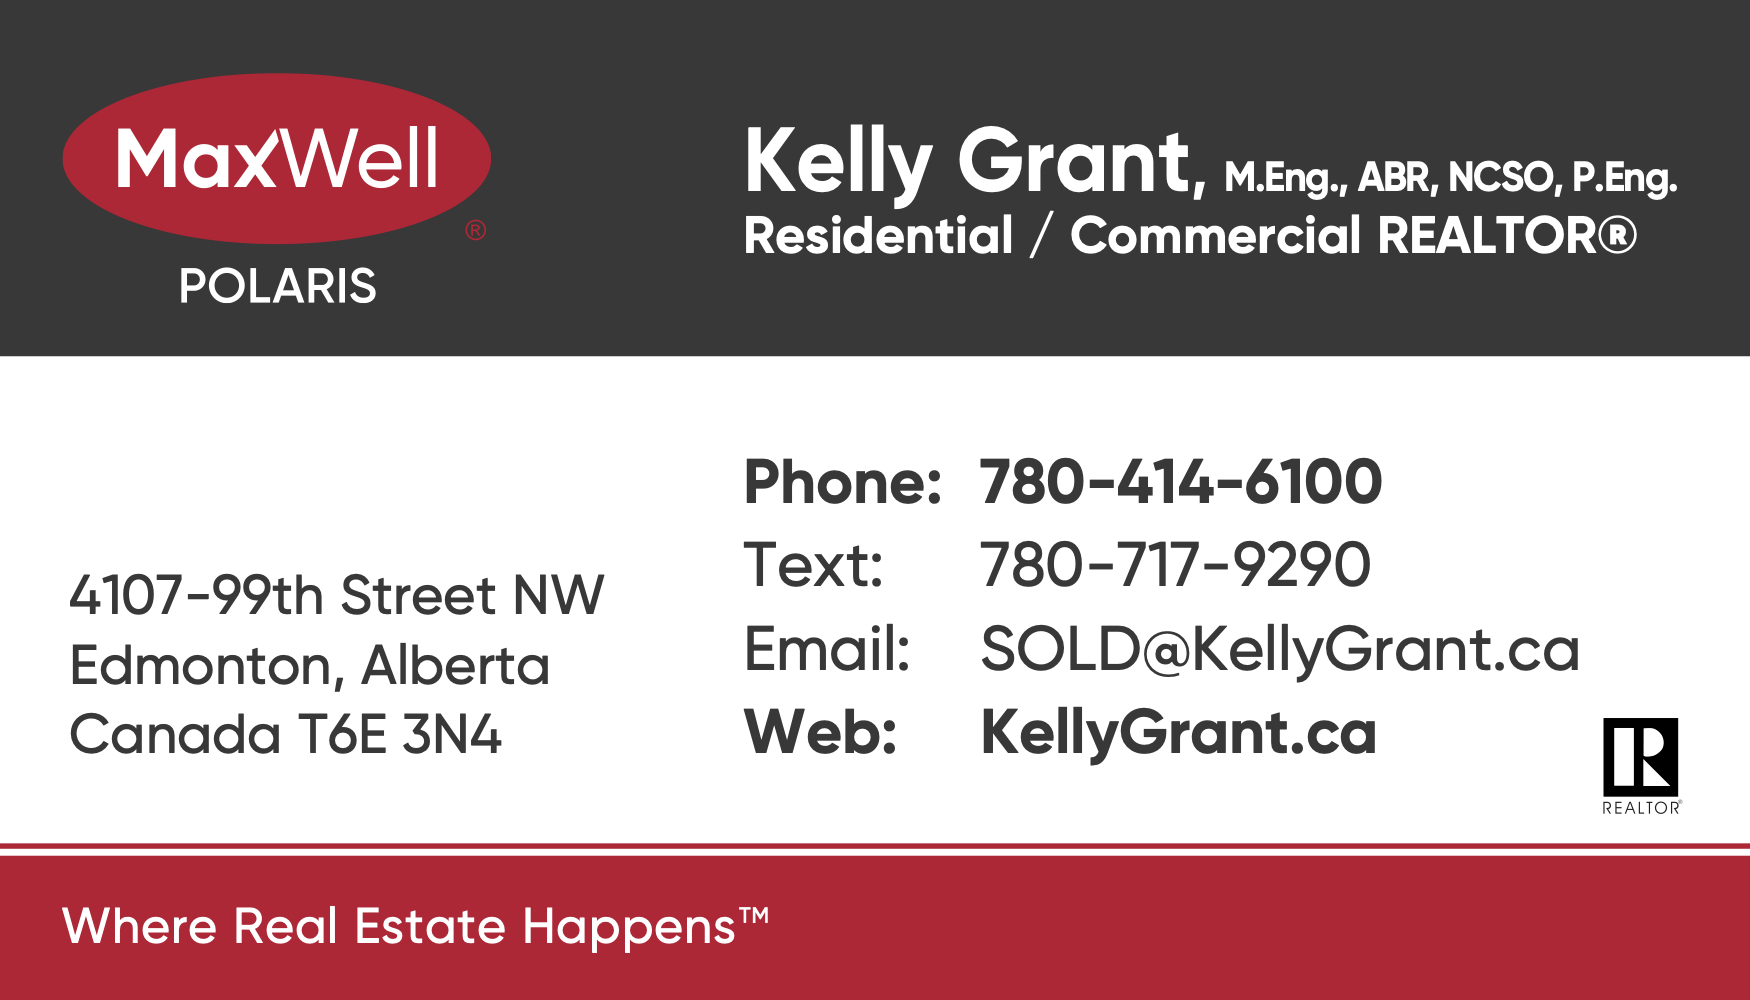 Kelly Grant MaxWell Business Card 3